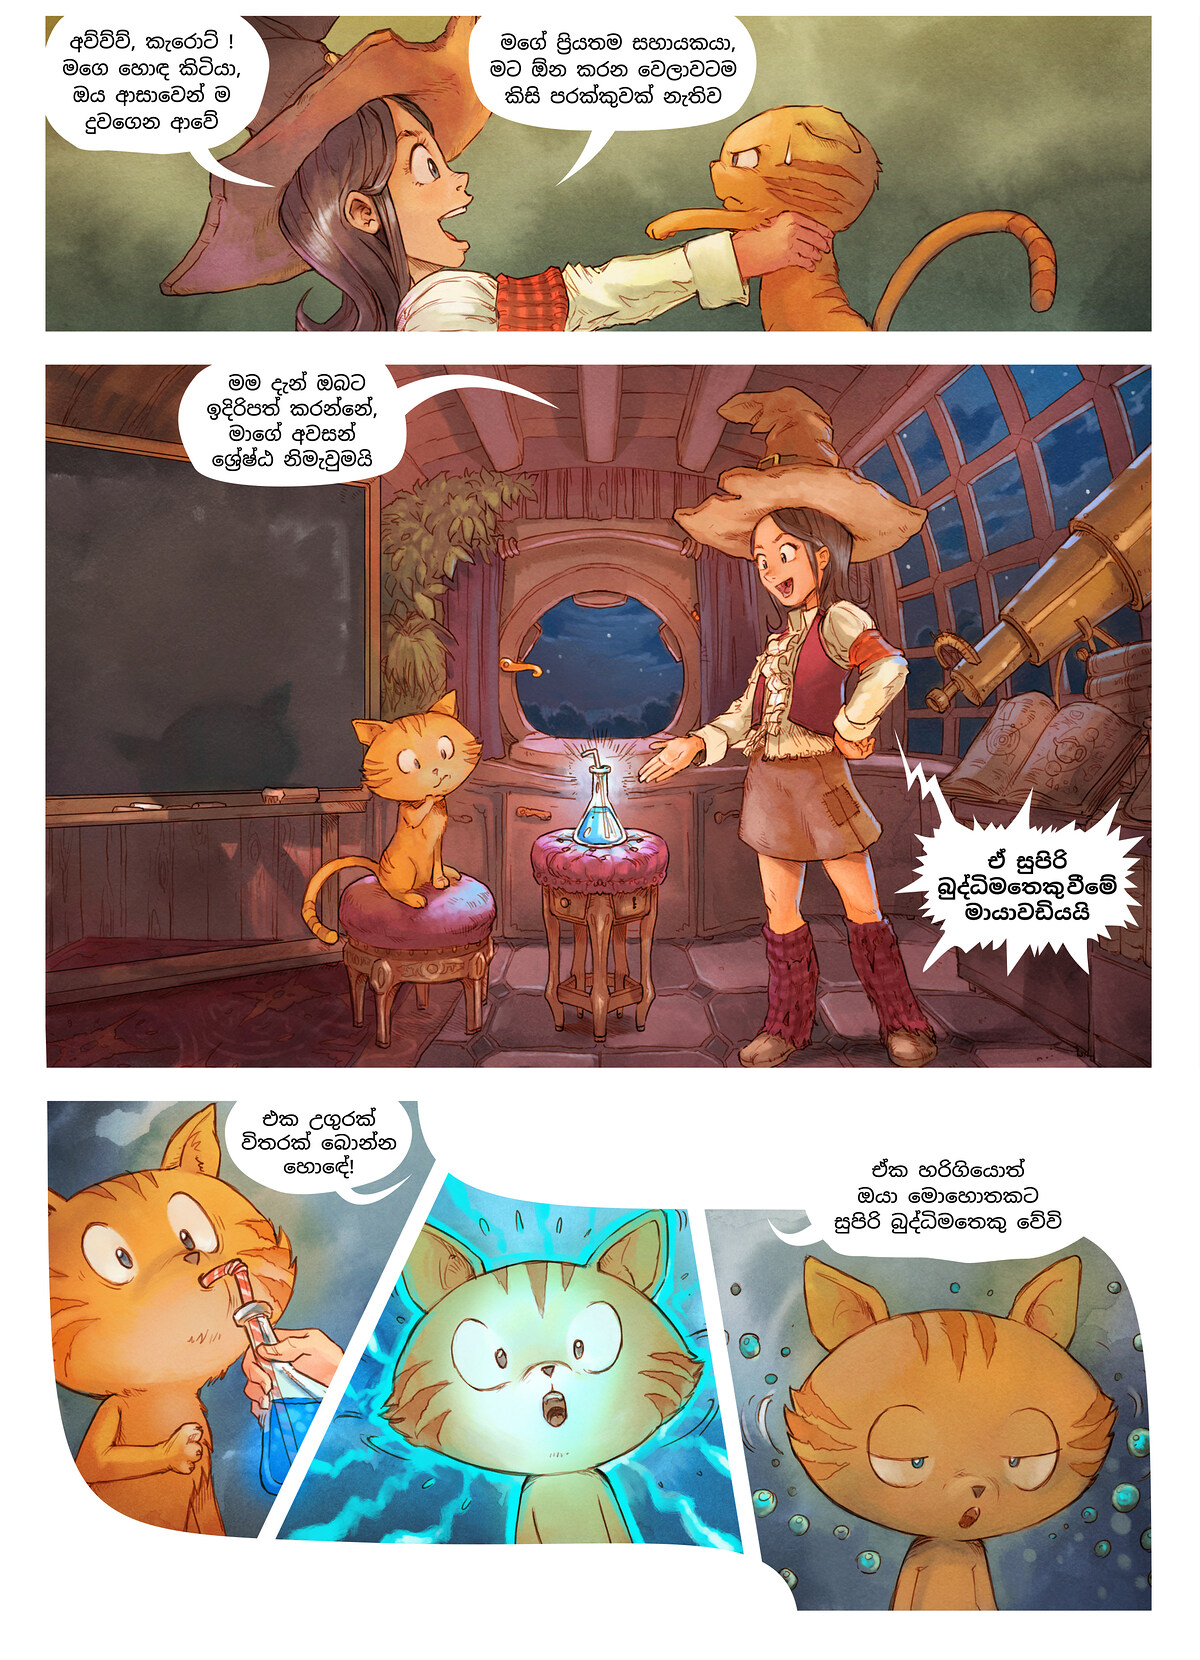 A webcomic page of Pepper&Carrot, episode 4 [si], page 3